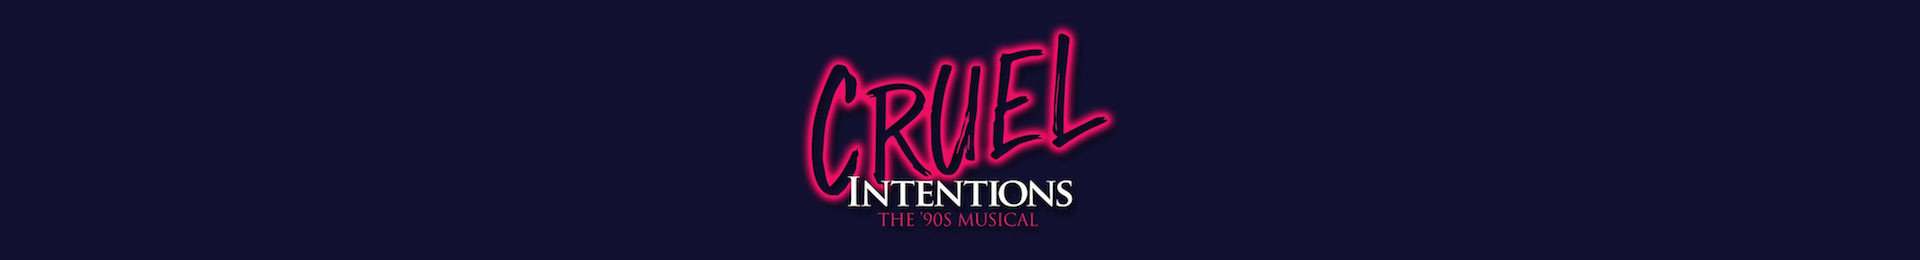 Cruel Intentions: The '90s Musical banner image